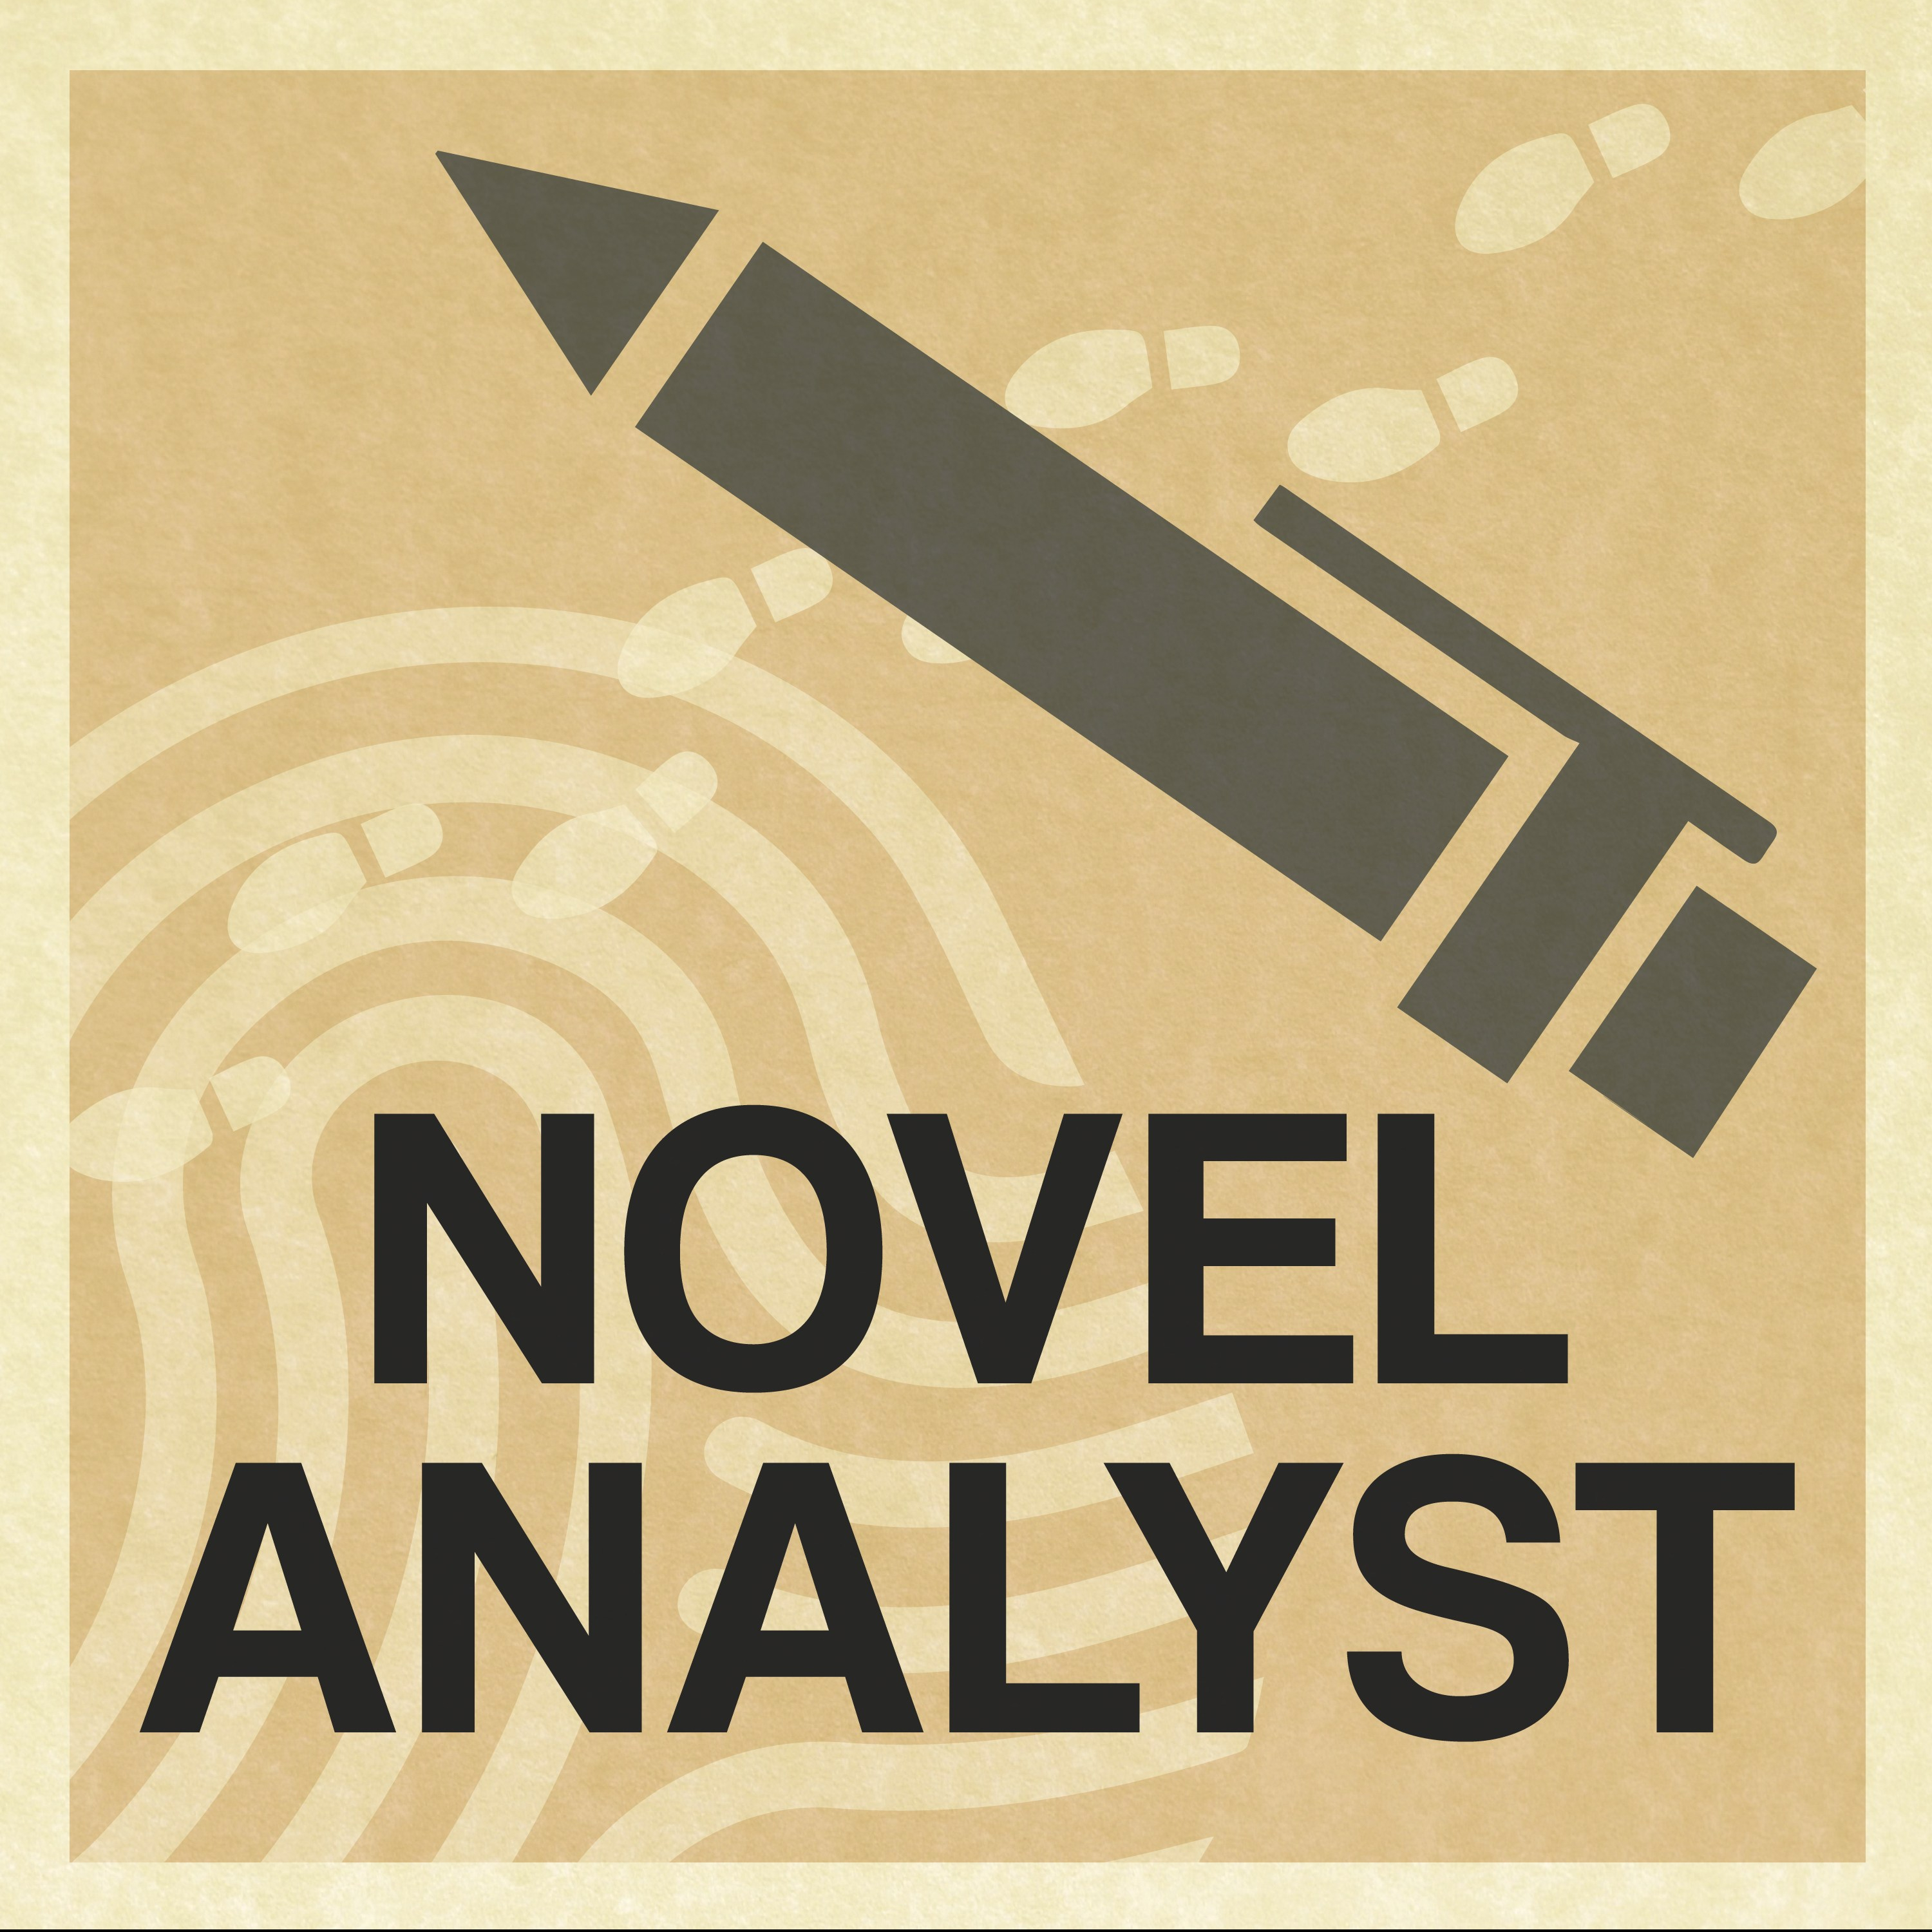 The Novel Analyst Podcast by Jed Herne